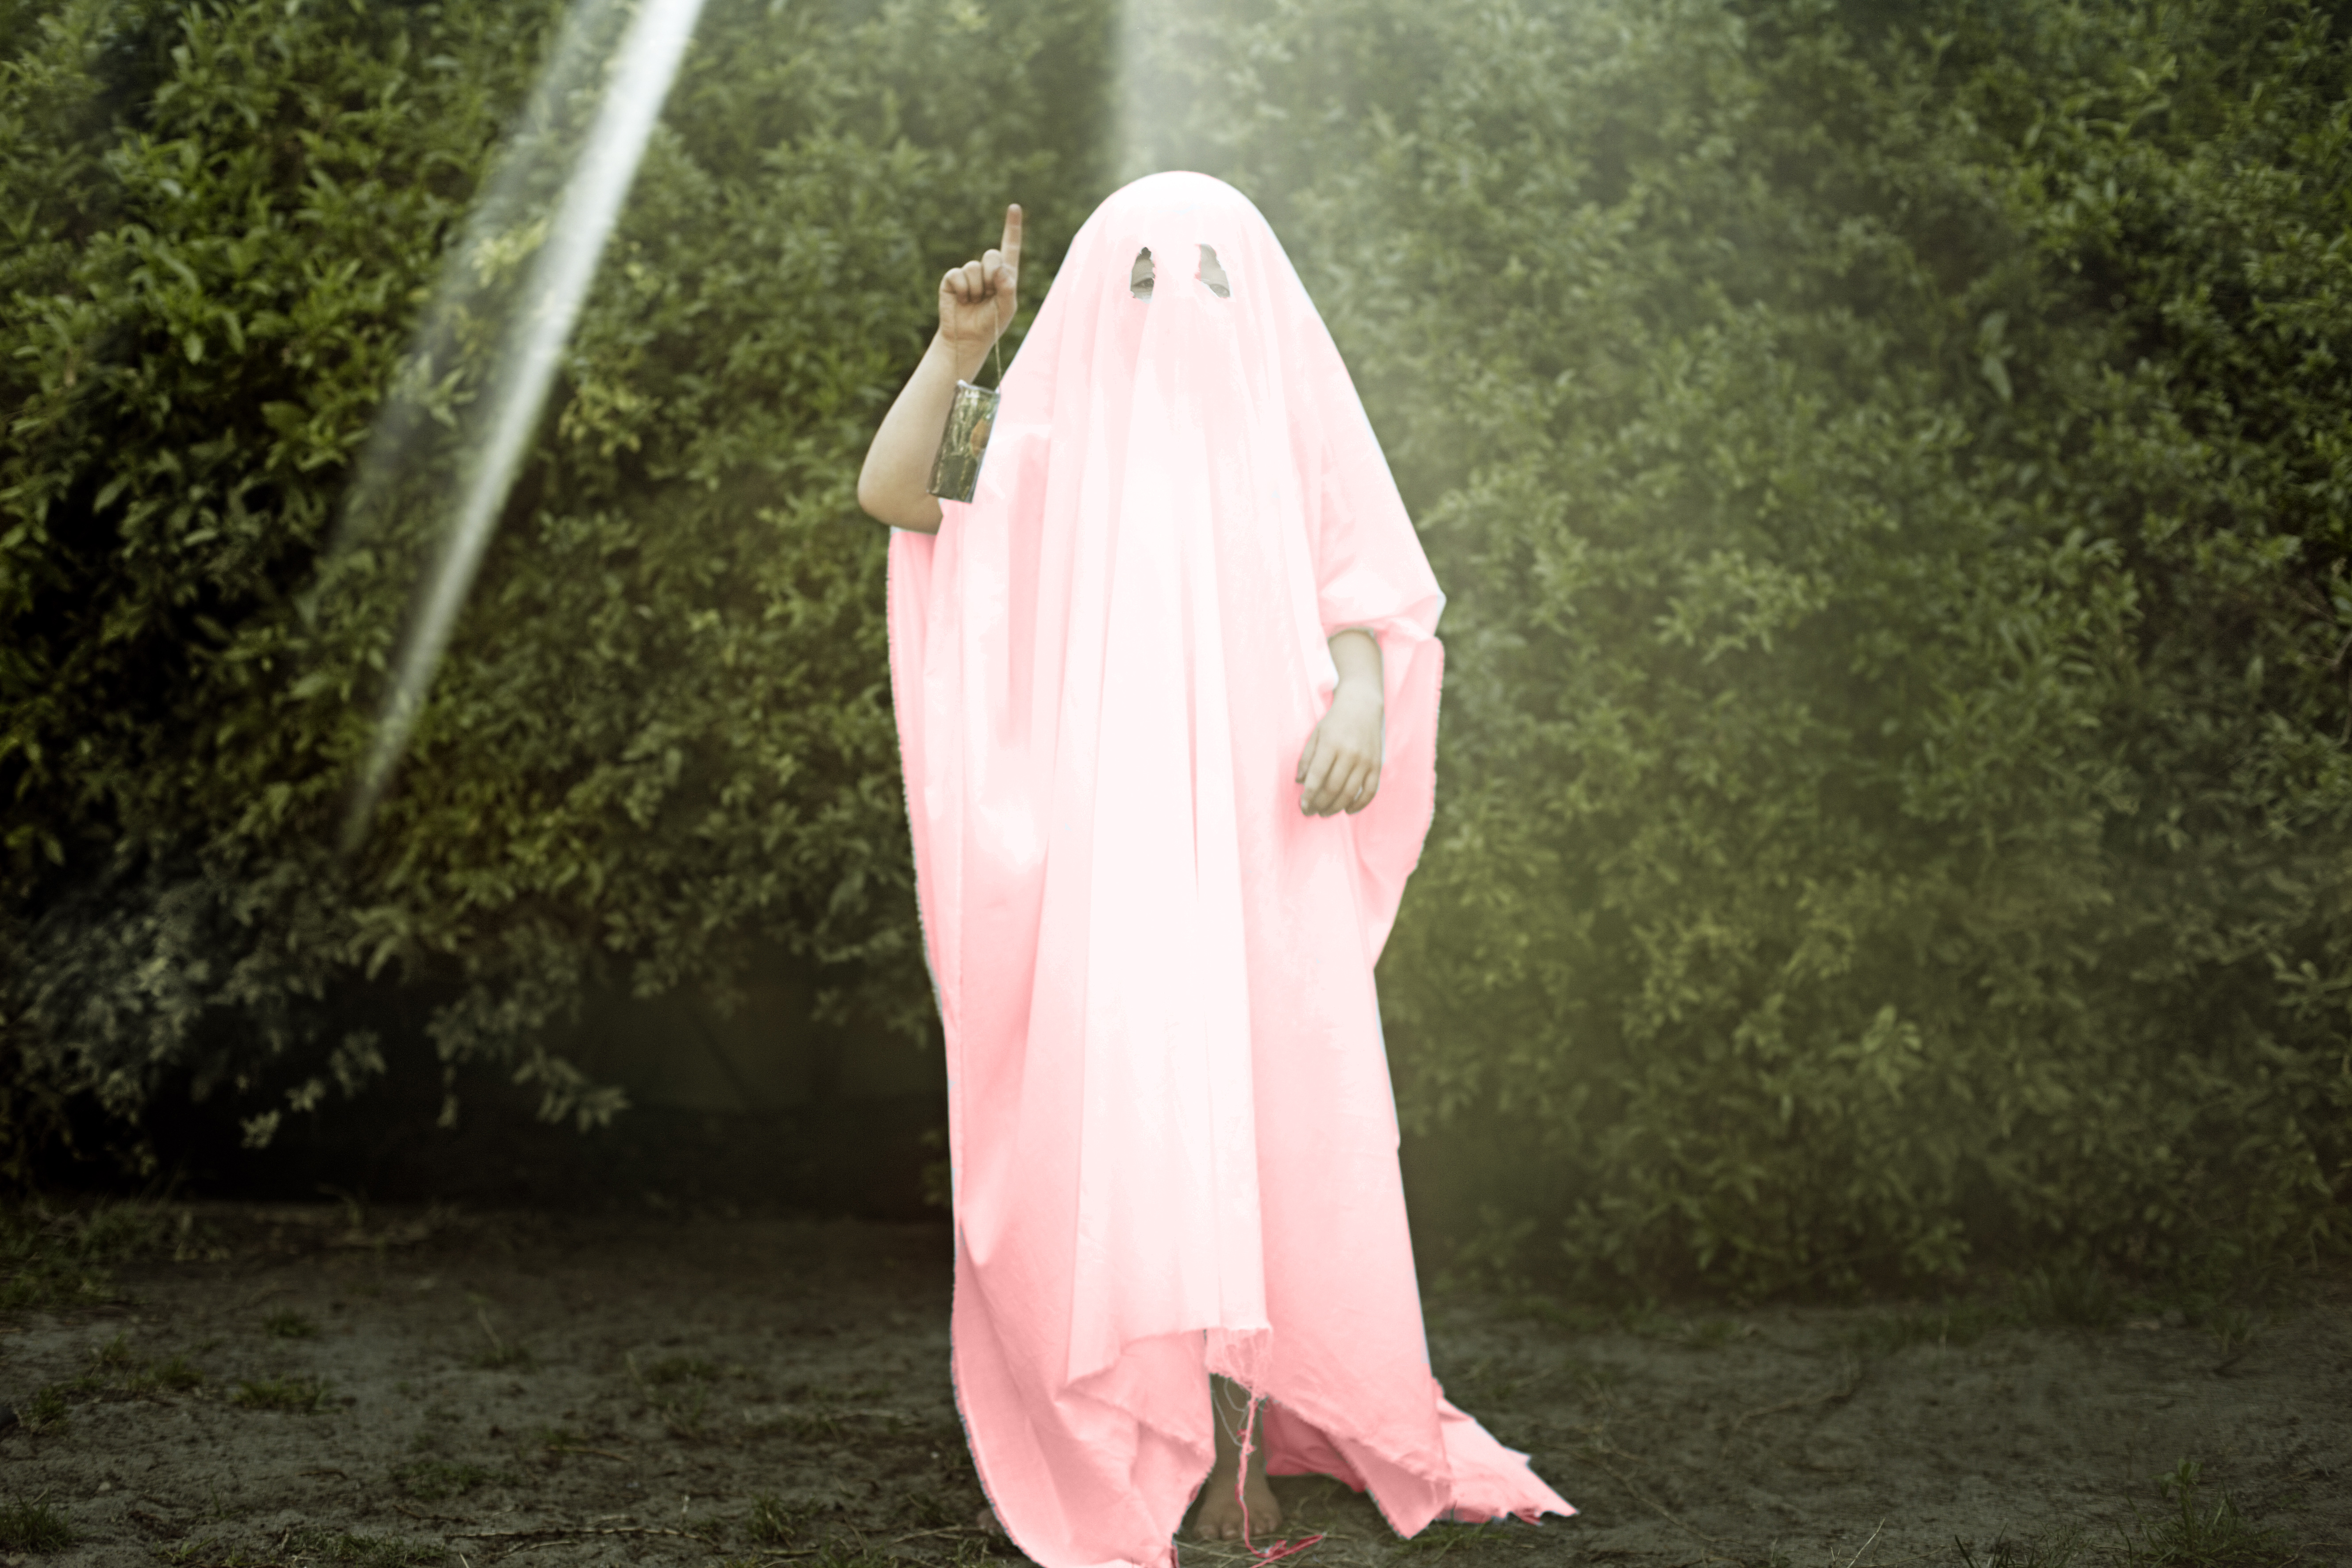 A person covered in a pink sheet as the ghost of millennial pink.